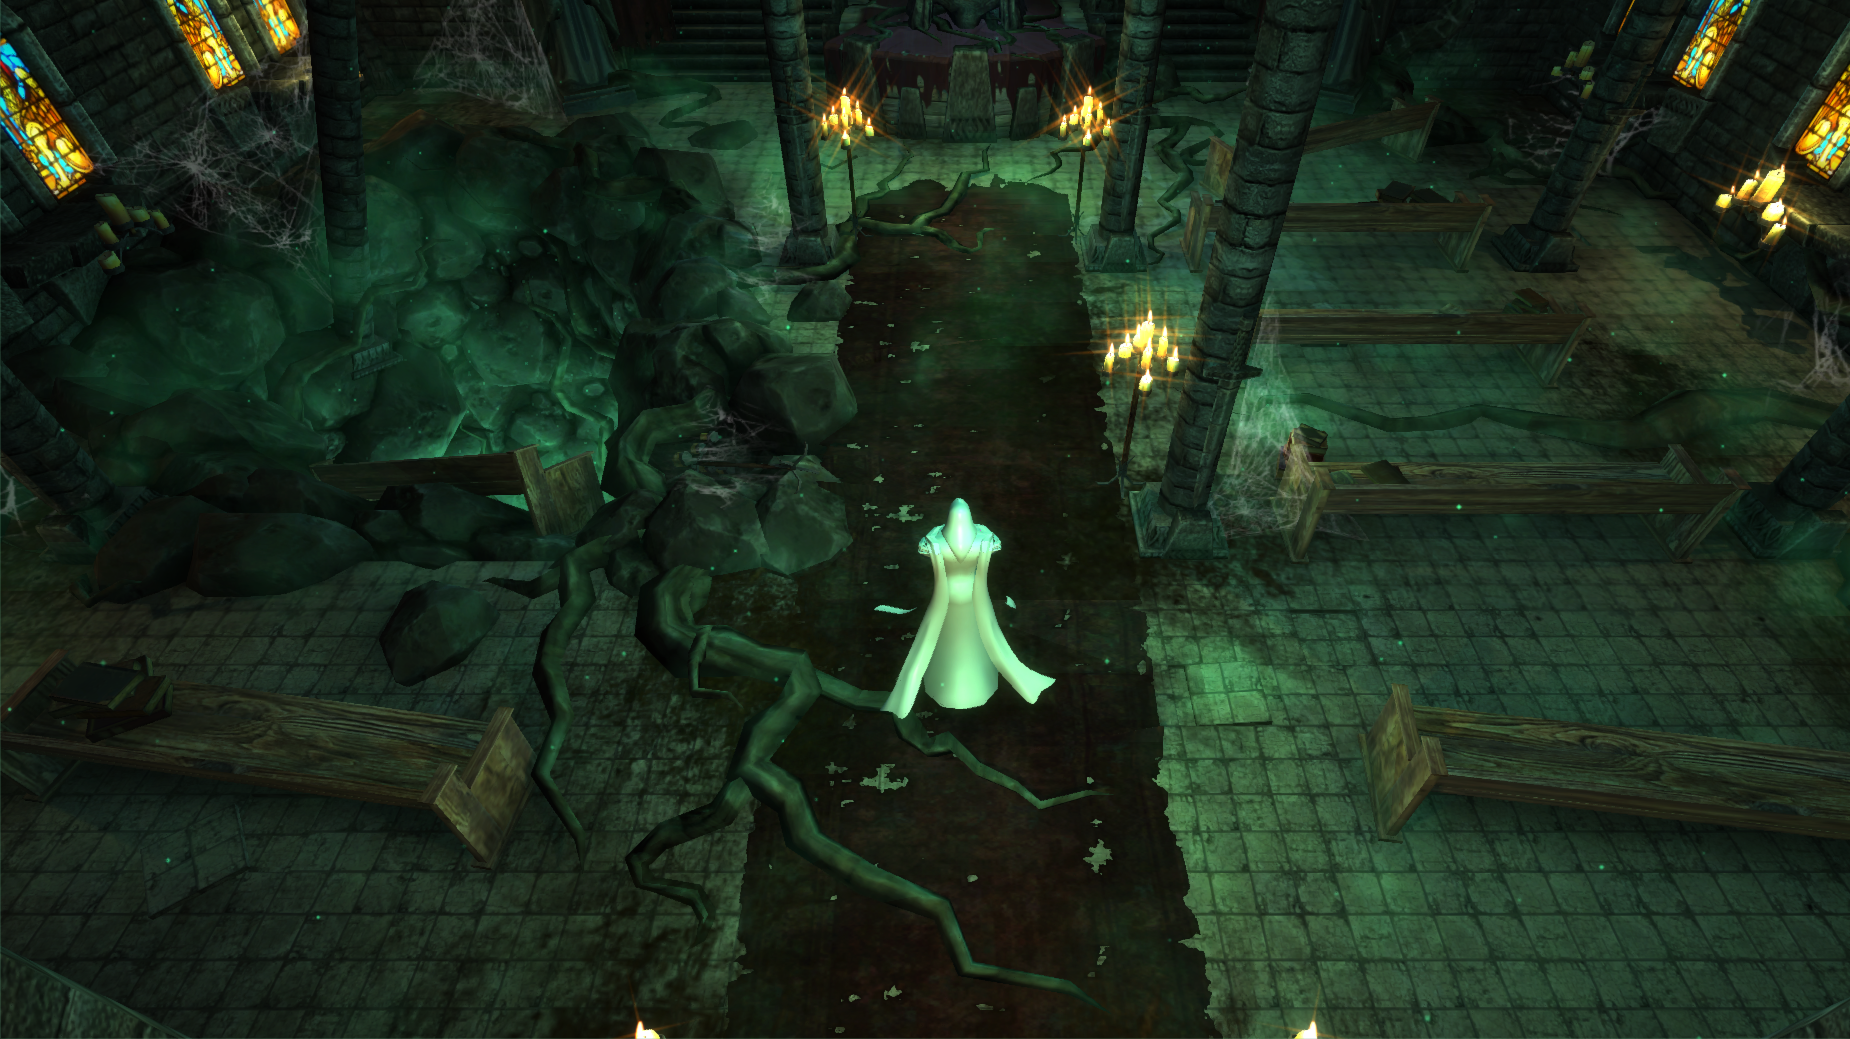 throne room game character came 1